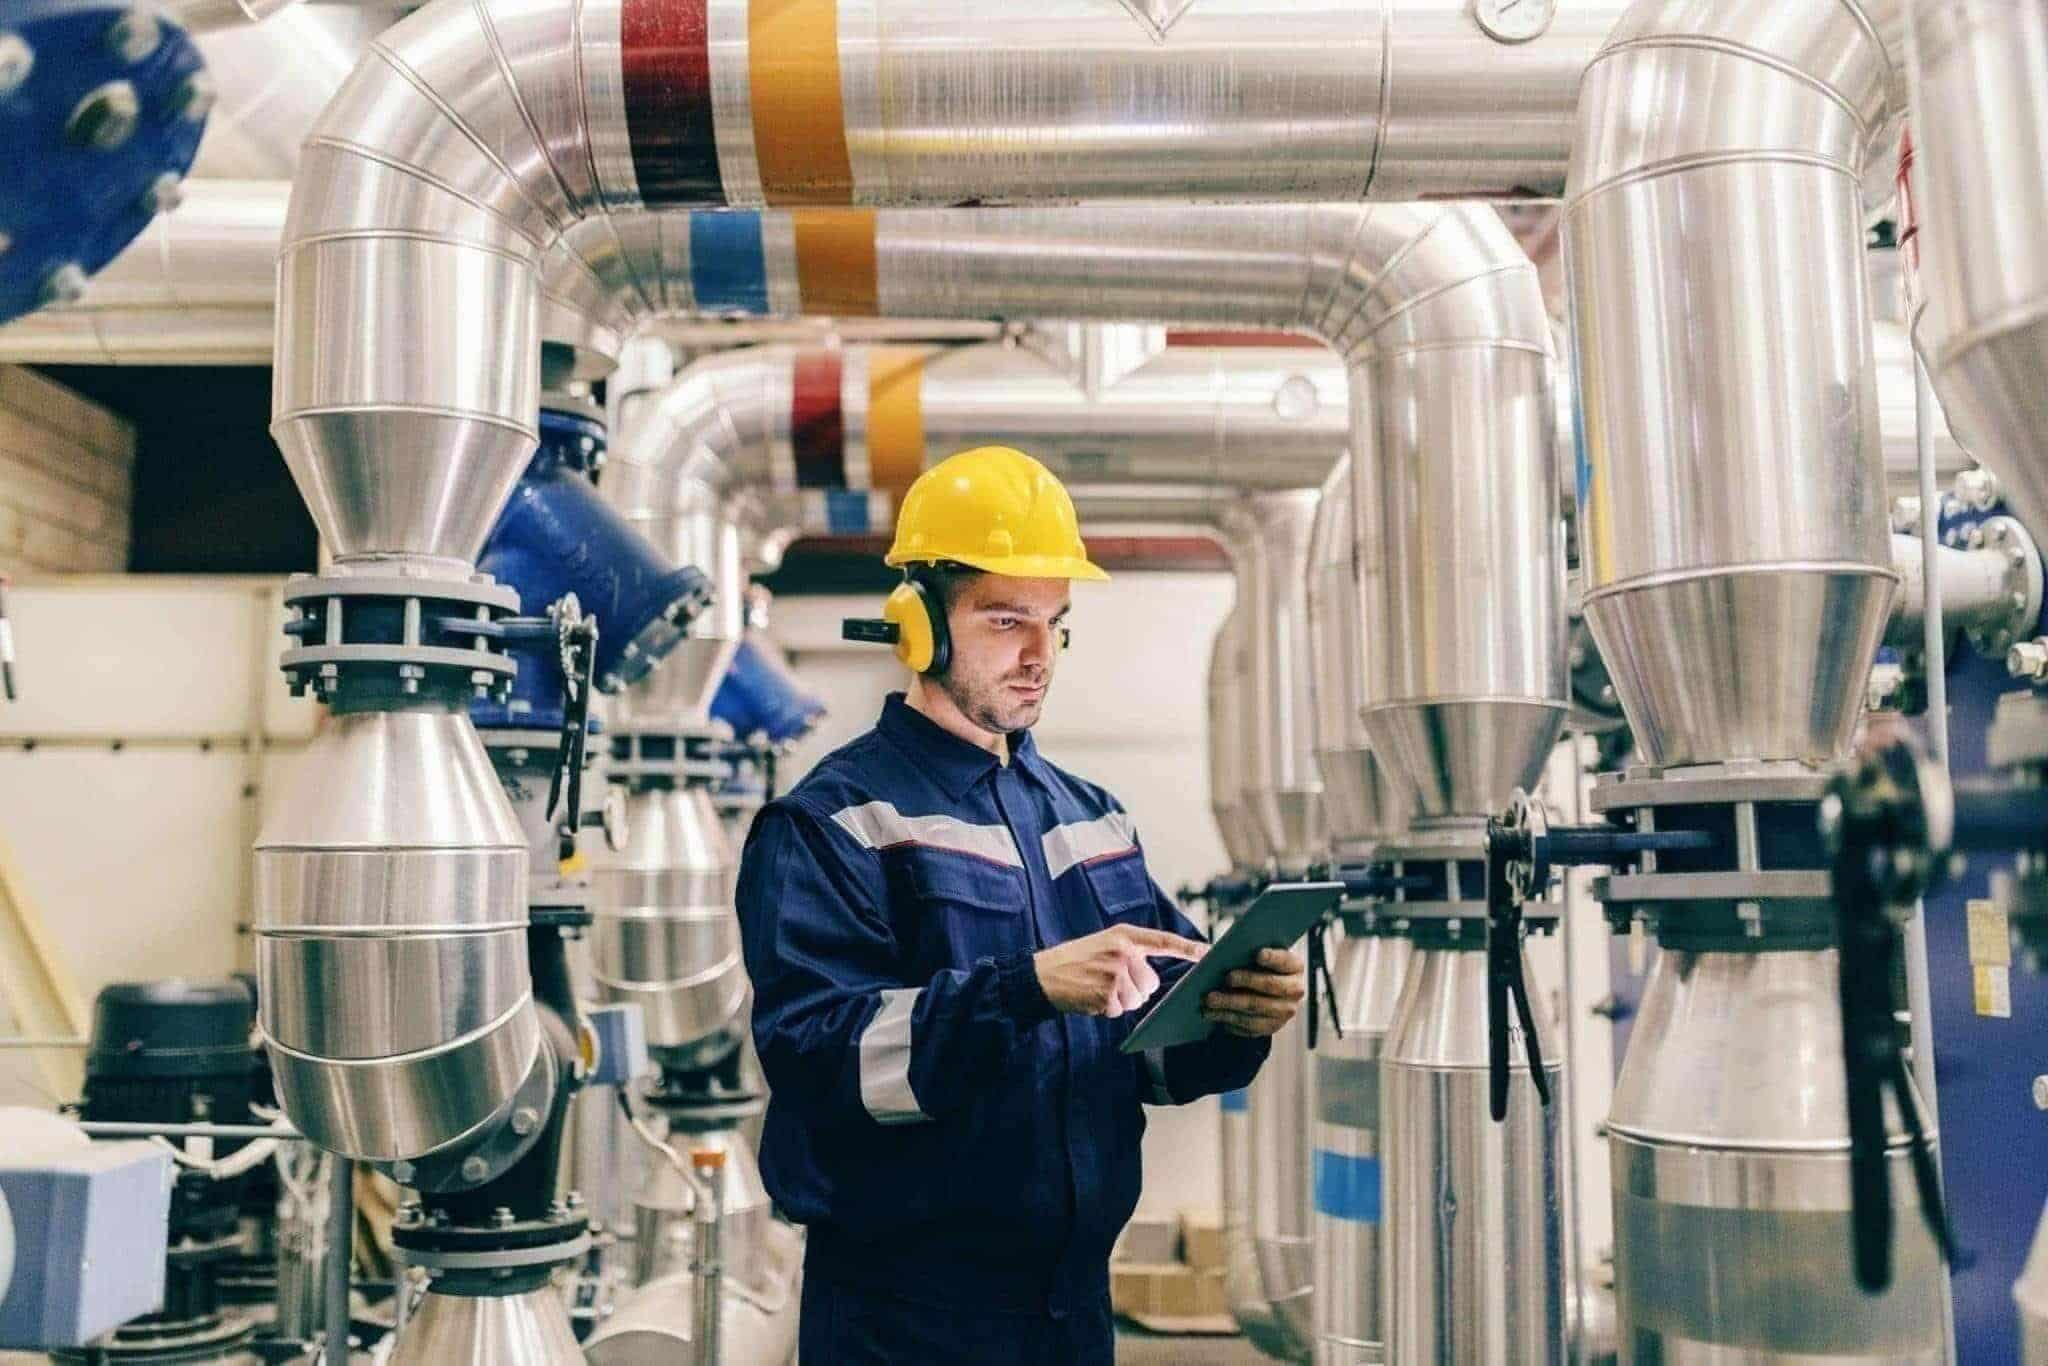 ENERGY MANAGEMENT IN MANUFACTURING